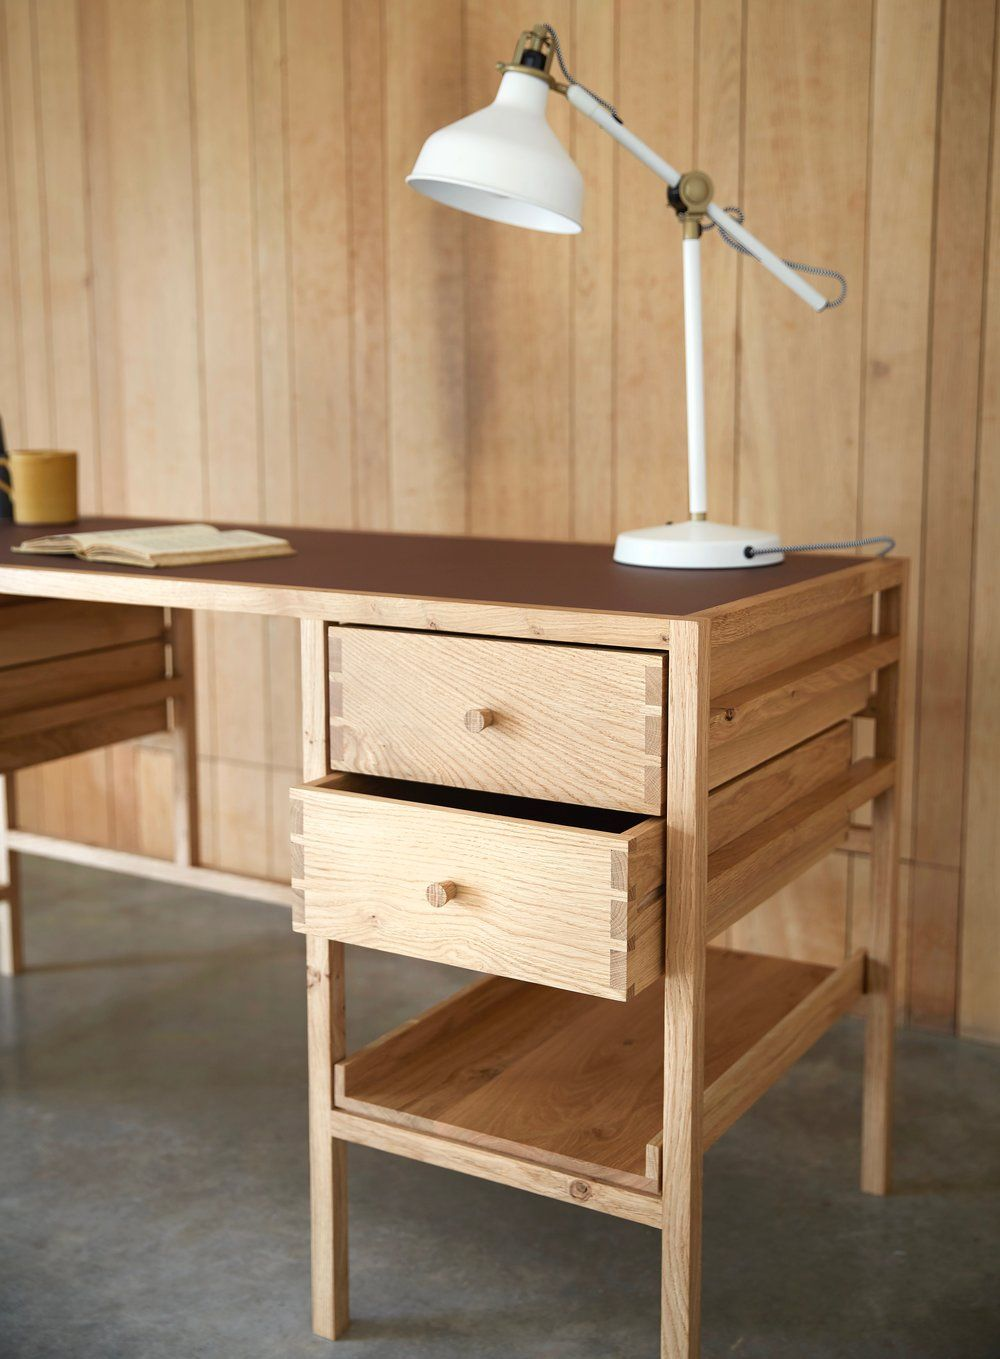 pin by leslie dallapiccola on dise o muebles in 2019 woodworking rh pinterest ca